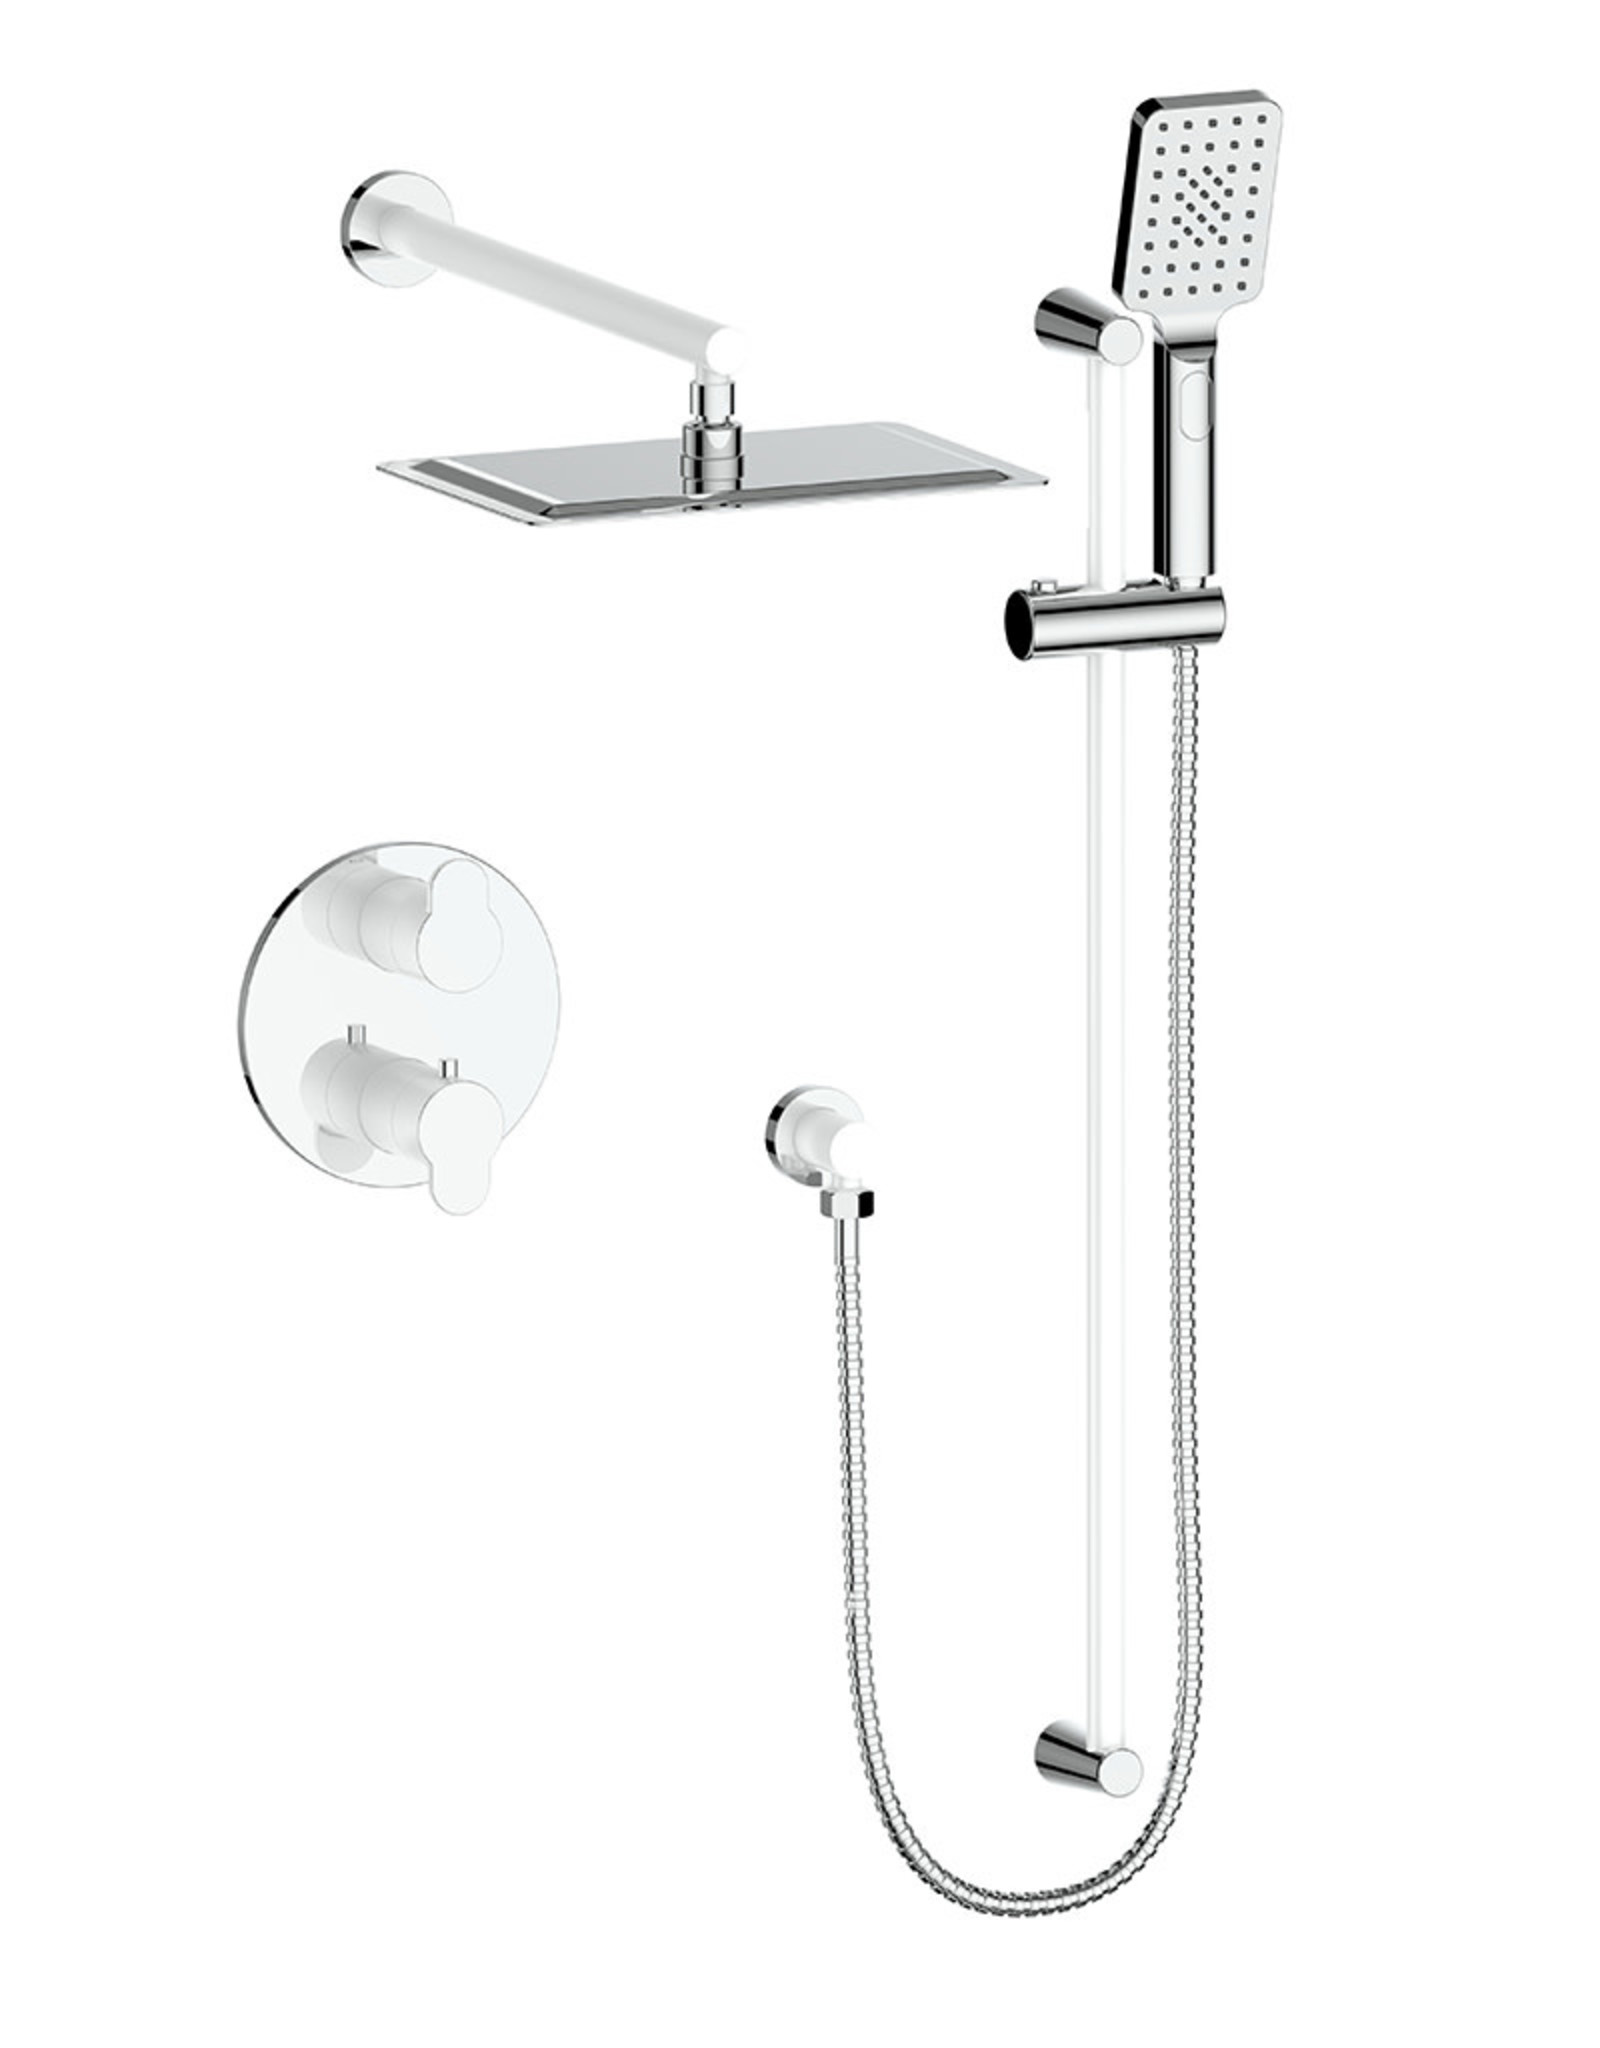 VOGT LUSTEN - 2-WAY THERMOSTATIC SHOWER KIT CHROME- NO SPOUT